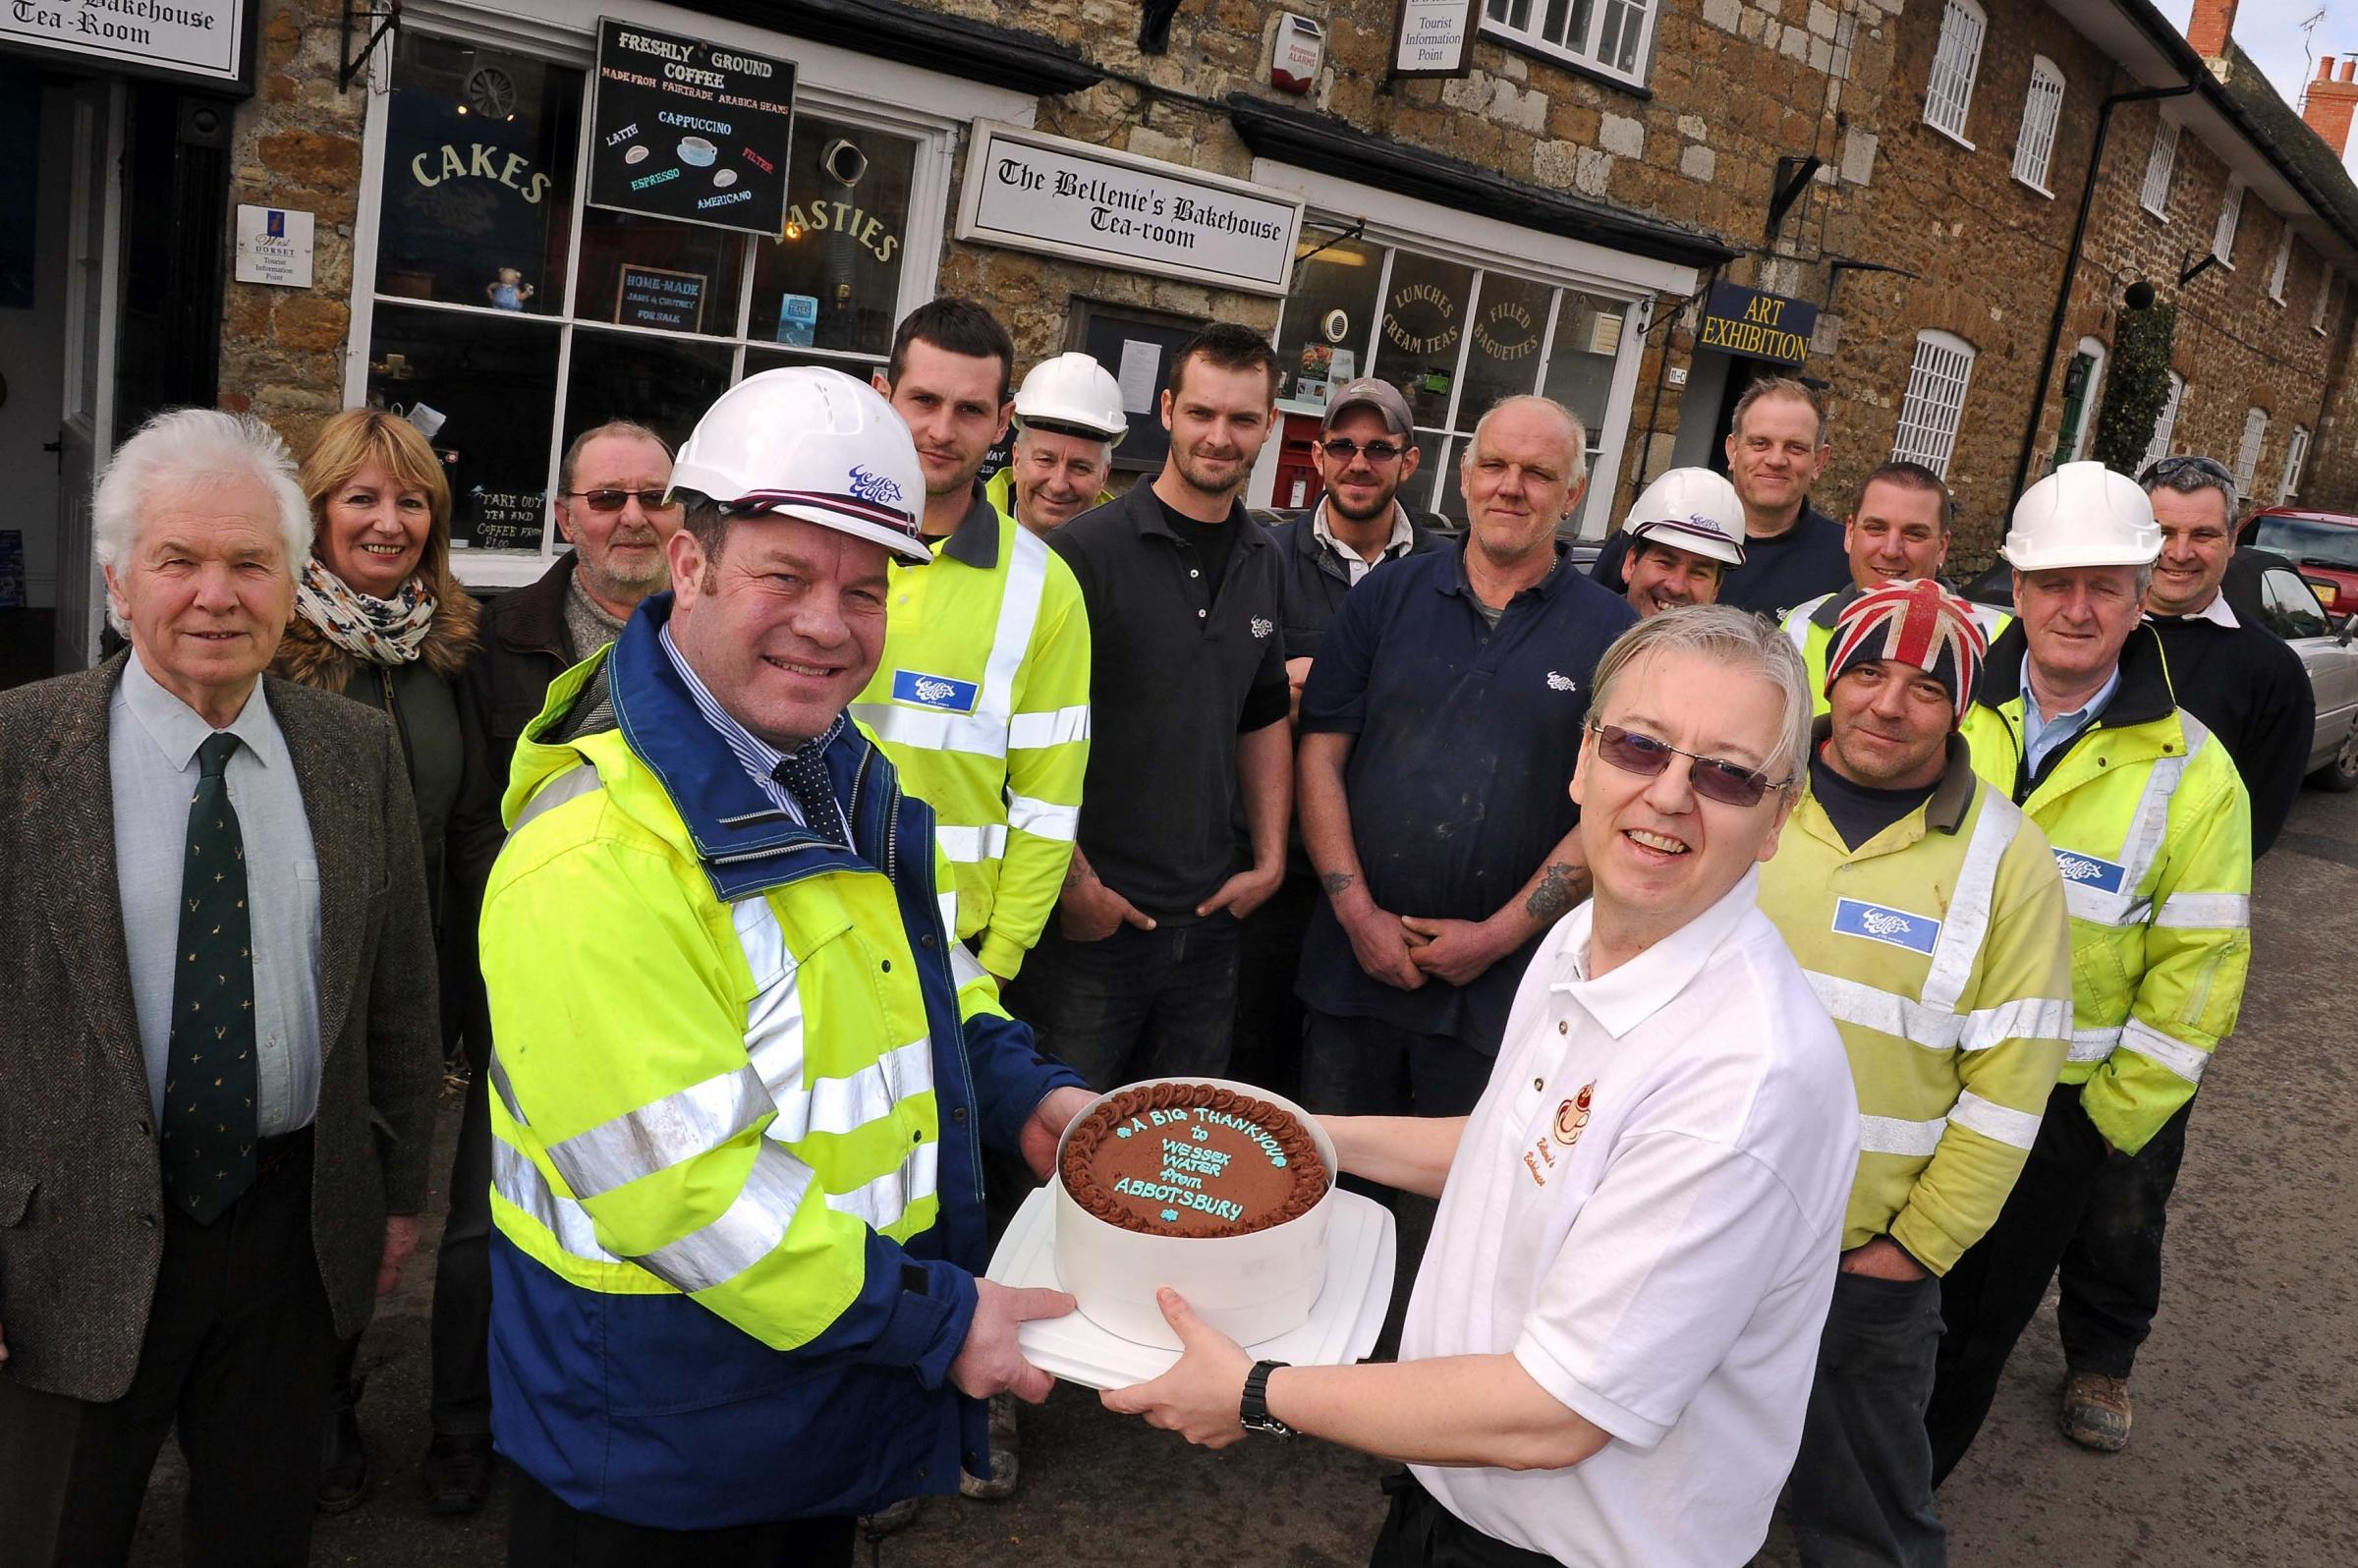 Steve Bellenie, right, from The Bellenie's Bakehouse in Abbotsbury, presents a cake to Wessex Water contracts manager Sean Dunne and staff